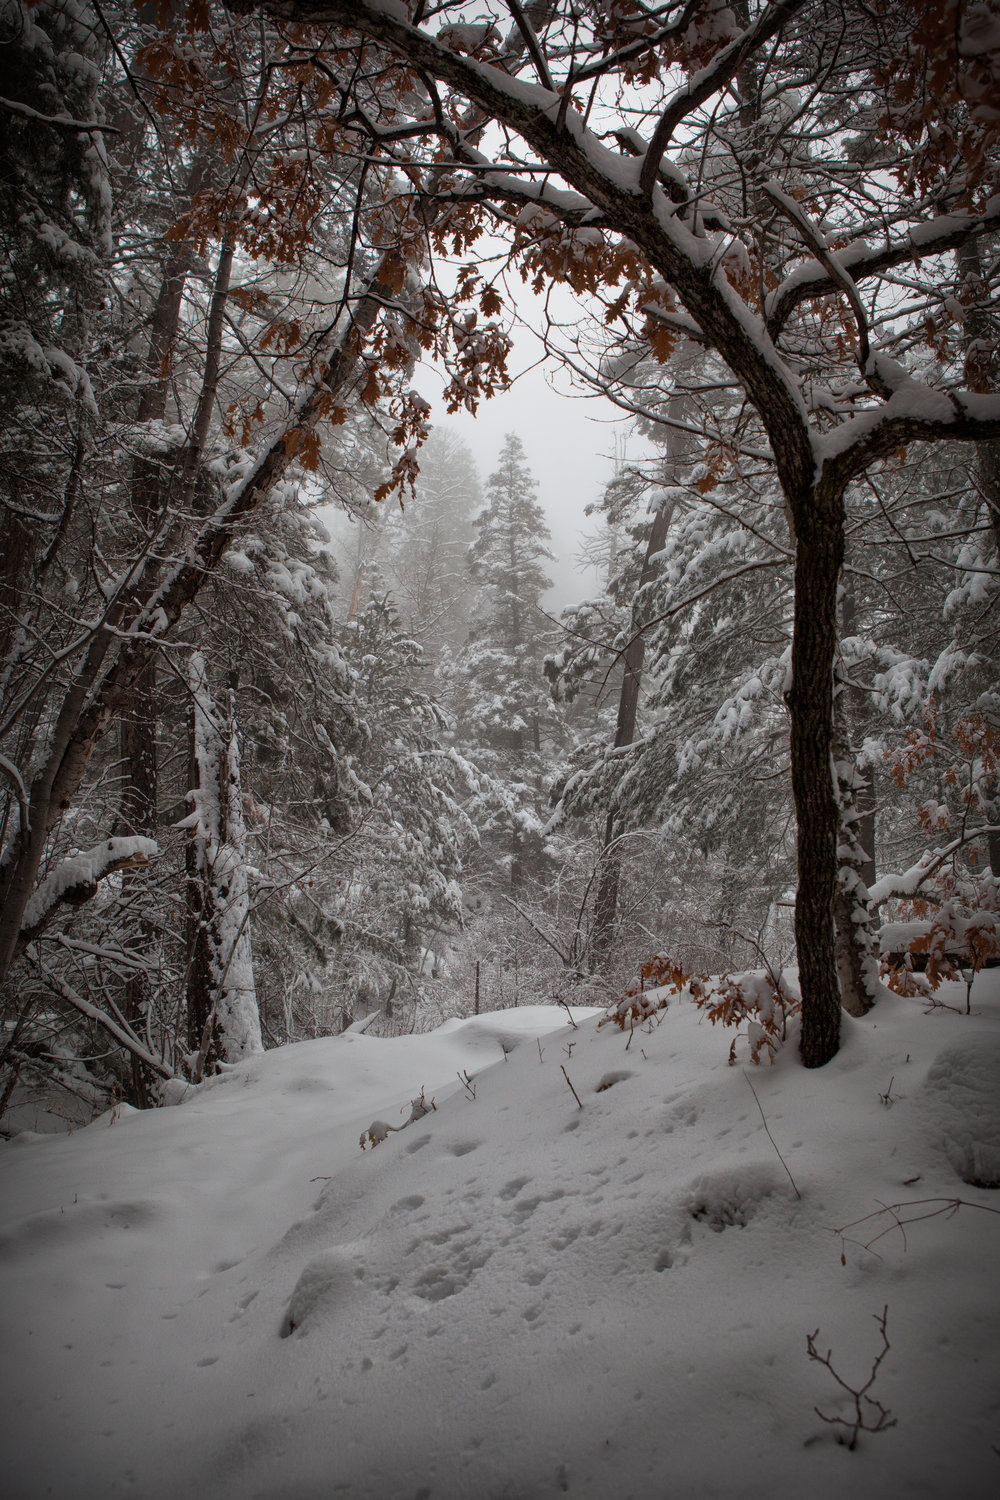 3rd Place New Mexico State Parks, 'Untouched Snowfall', Sarah McIntyre